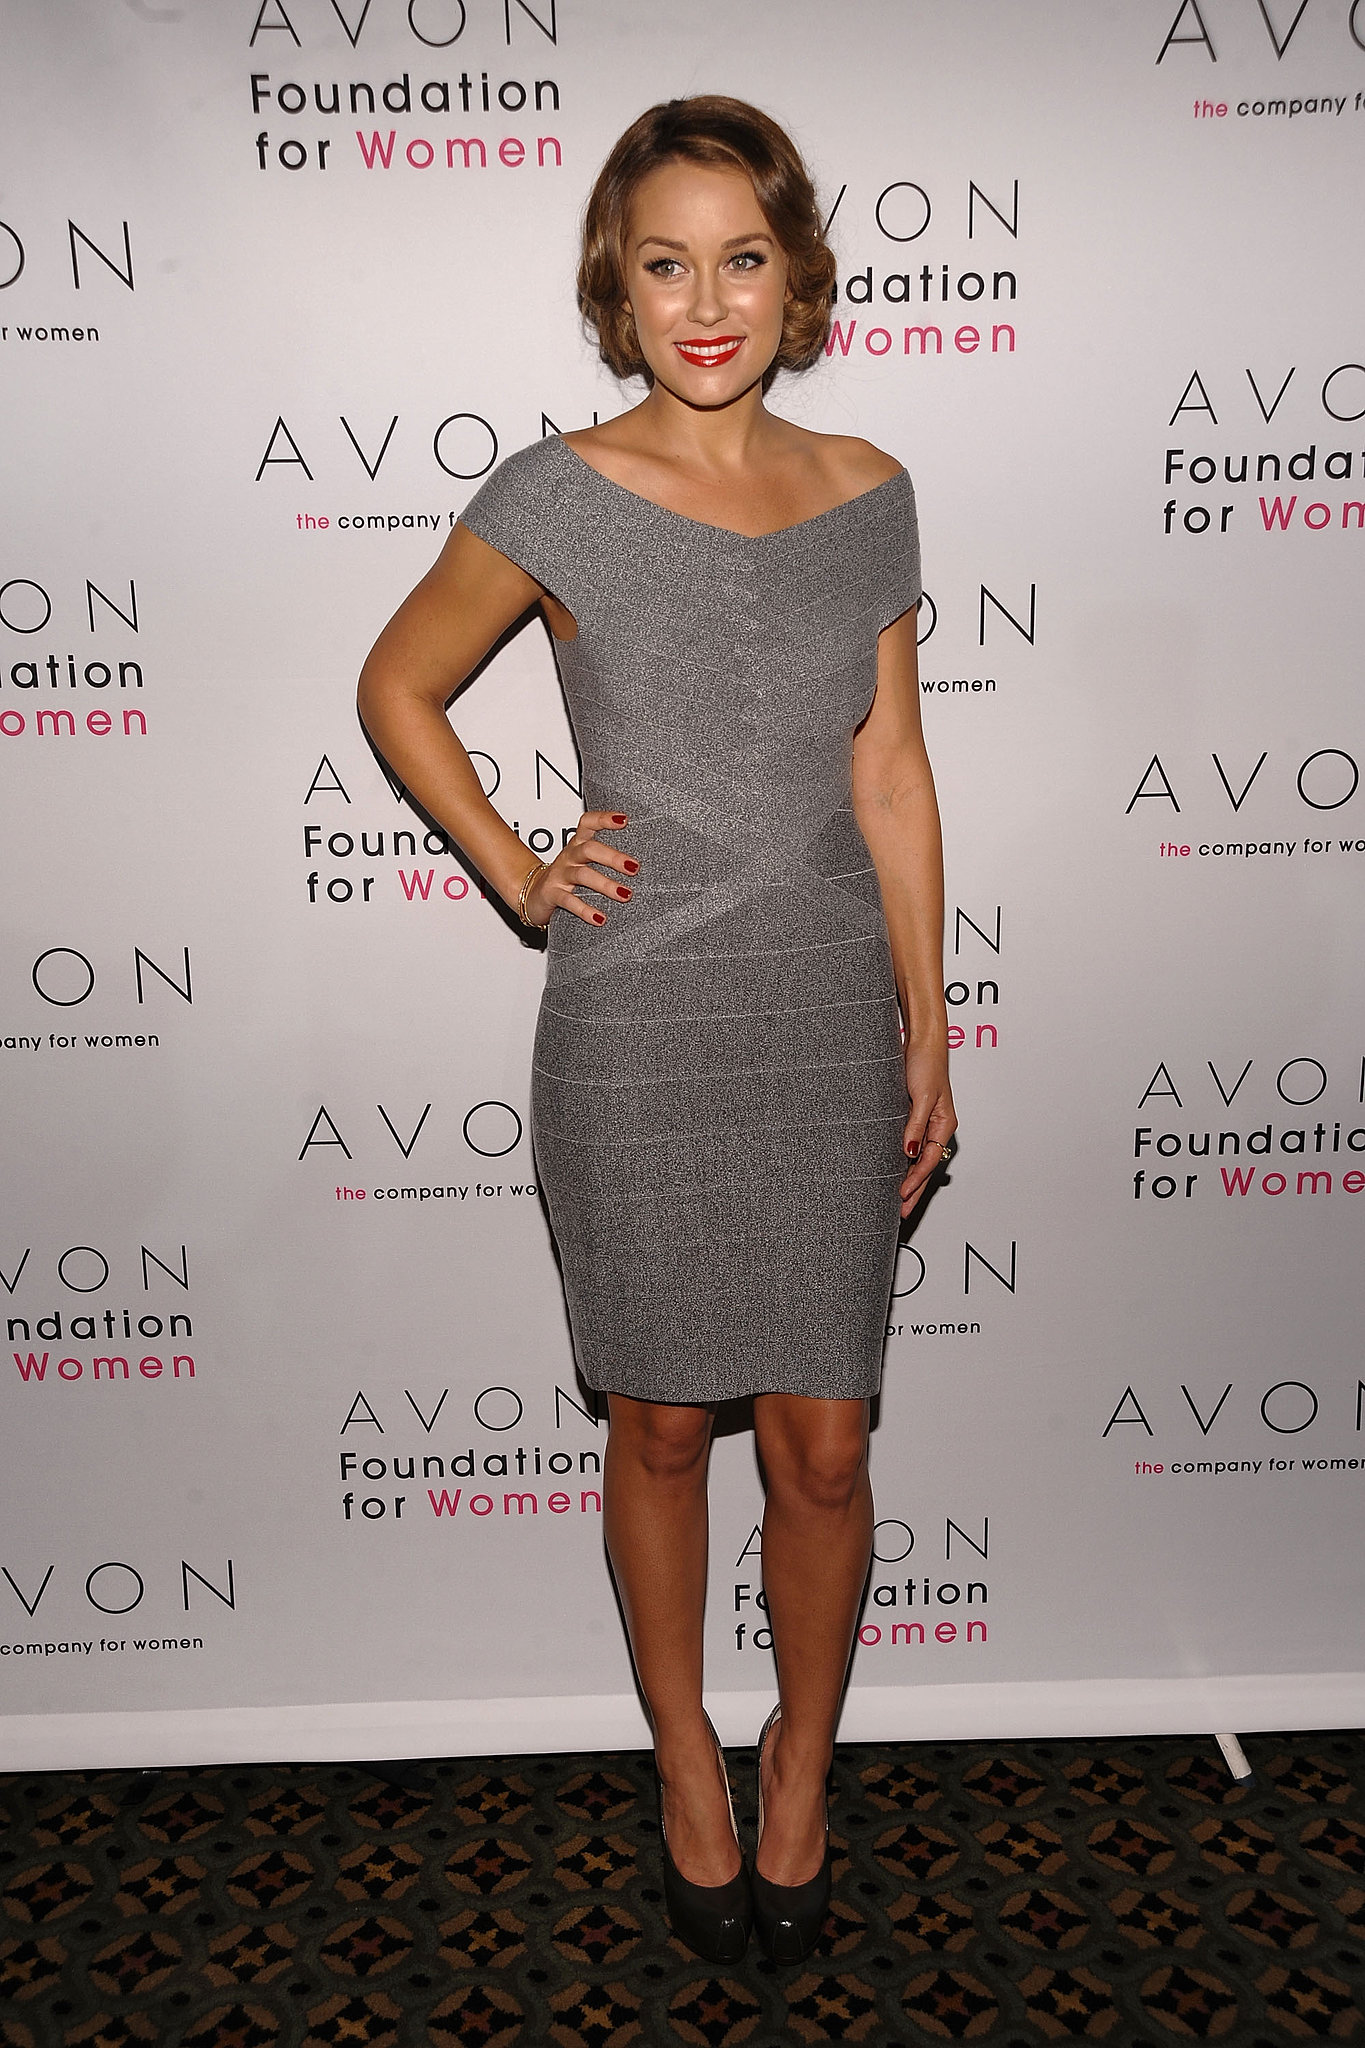 LC went for a grown-up look for an Avon event in 2009, wearing a curve-hugging Hervé Léger dress and YSL Tribute pumps. Lesson from Lauren: a red lip and coordinating nail polish oozes ladylike sophistication.